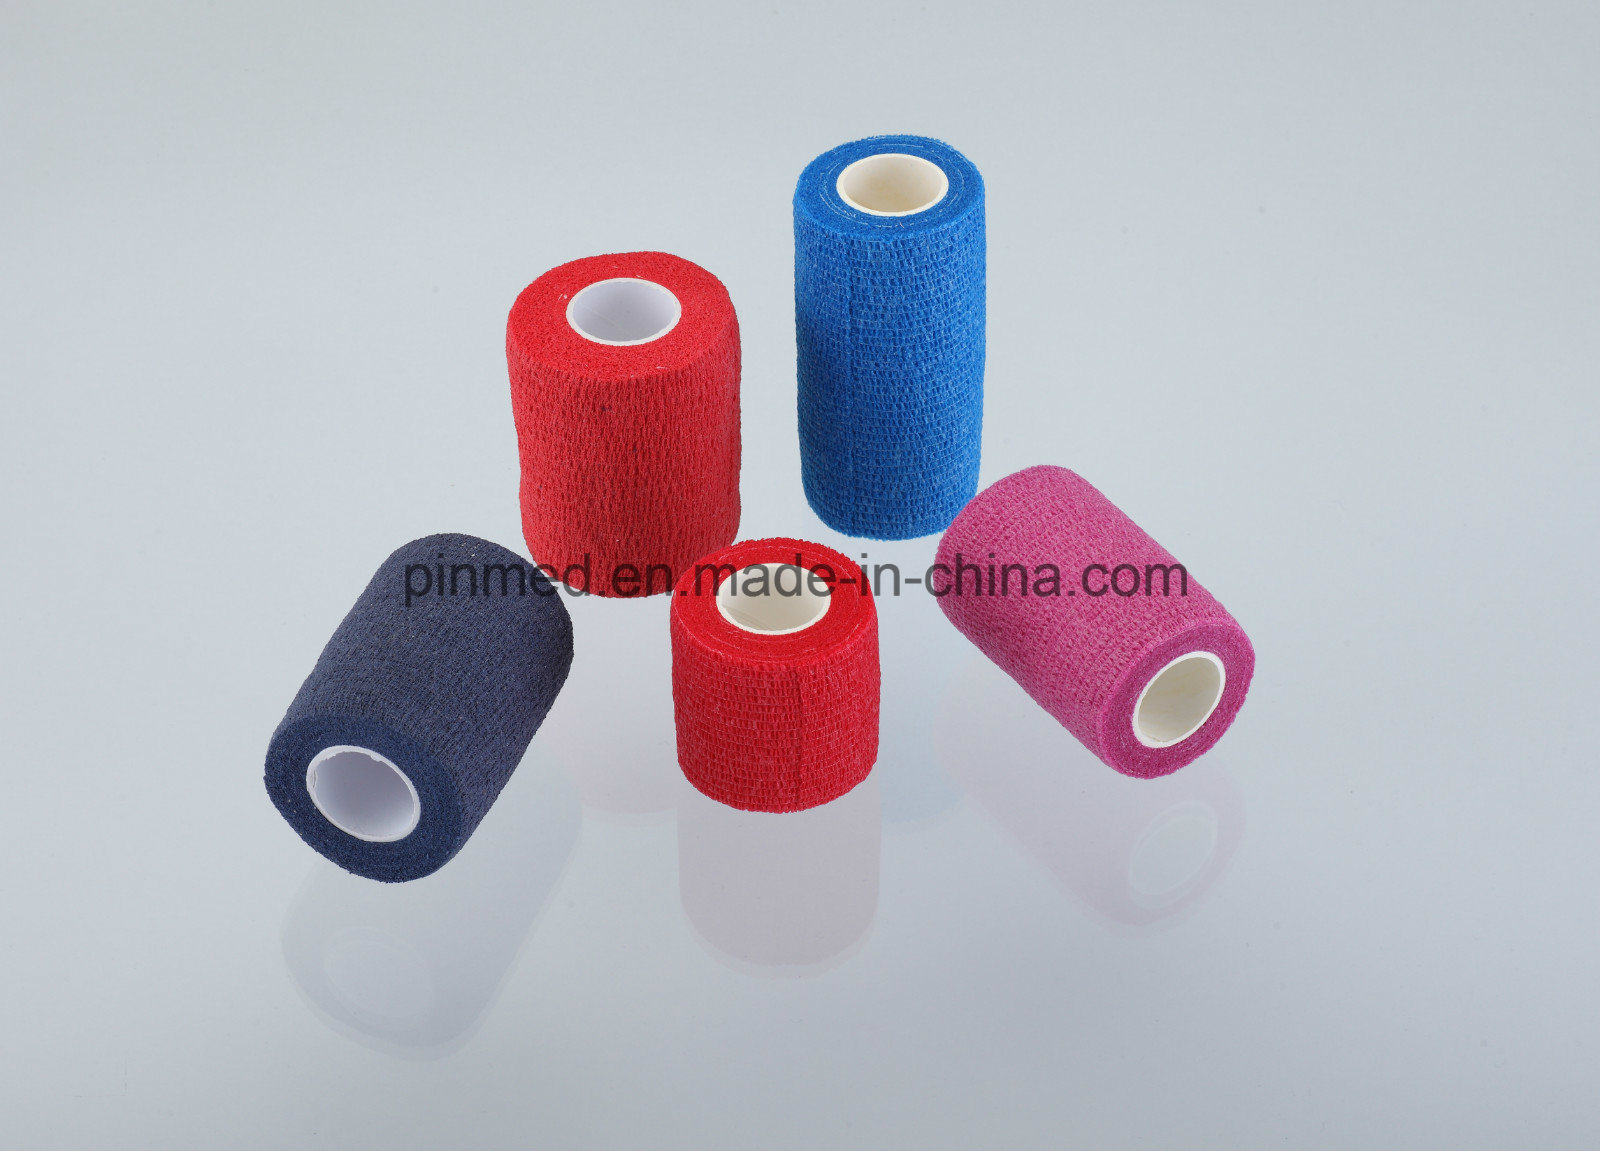 Disposable Cotton Self Adhesive Bandage